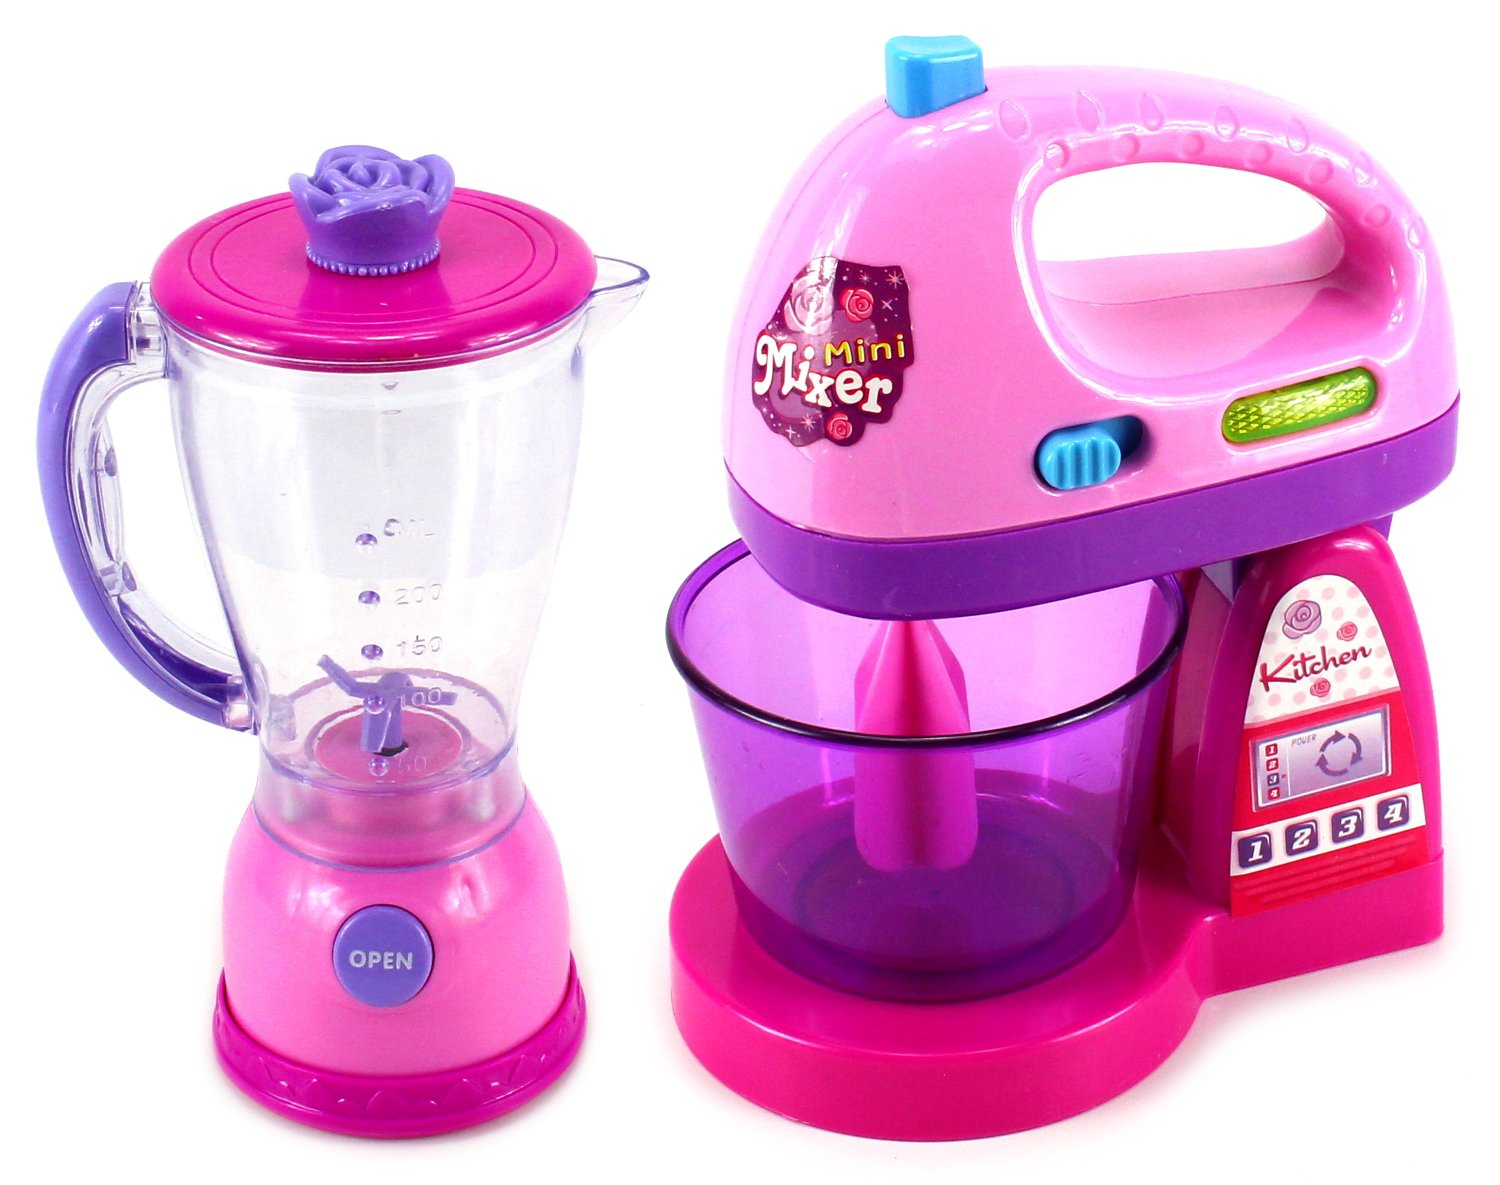 Happy Kitchen Blender Mixer Pretend Play Battery Operated Toy Home Appliances Play Set by Velocity Toys